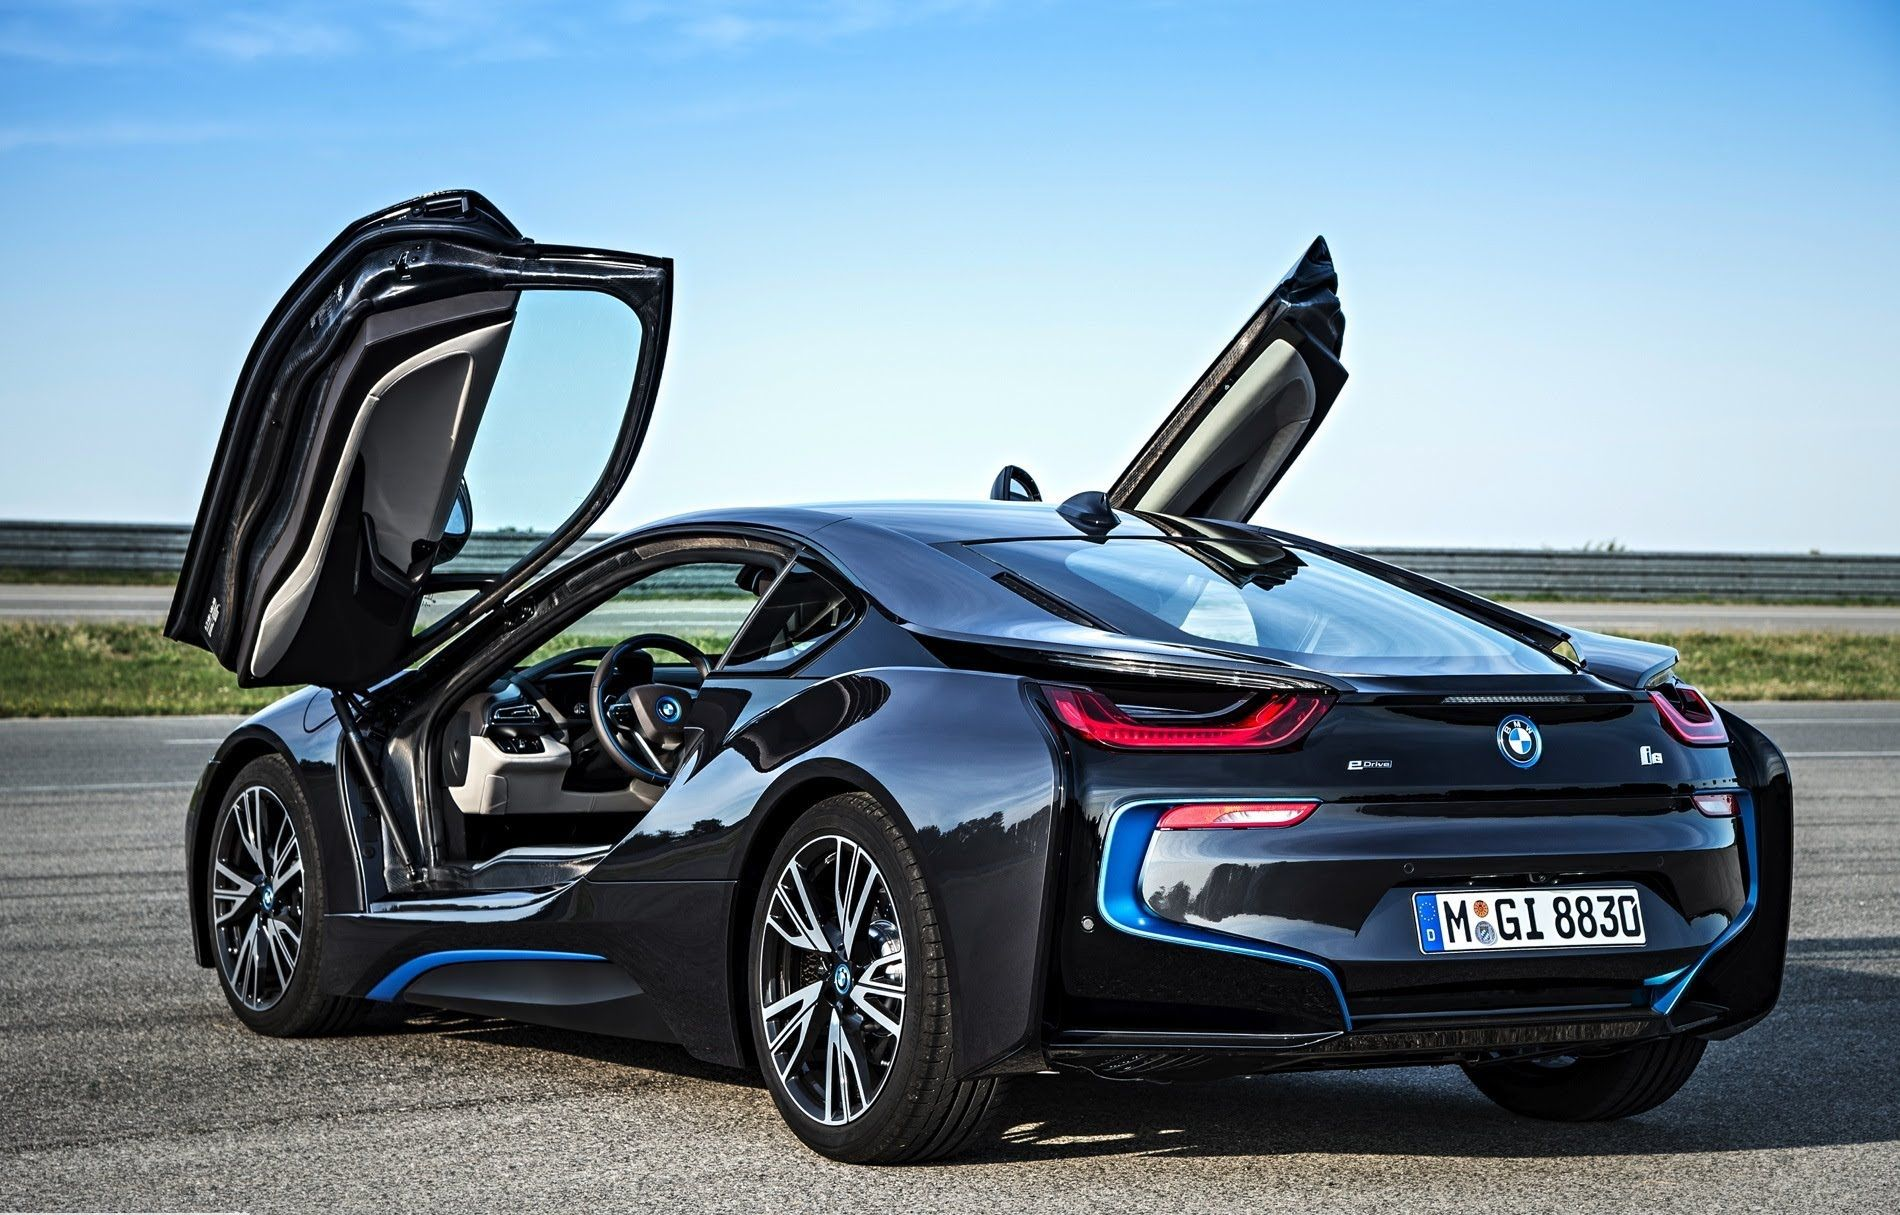 Dreamcars bmw hybrid electric car possible future new purchase very fast too